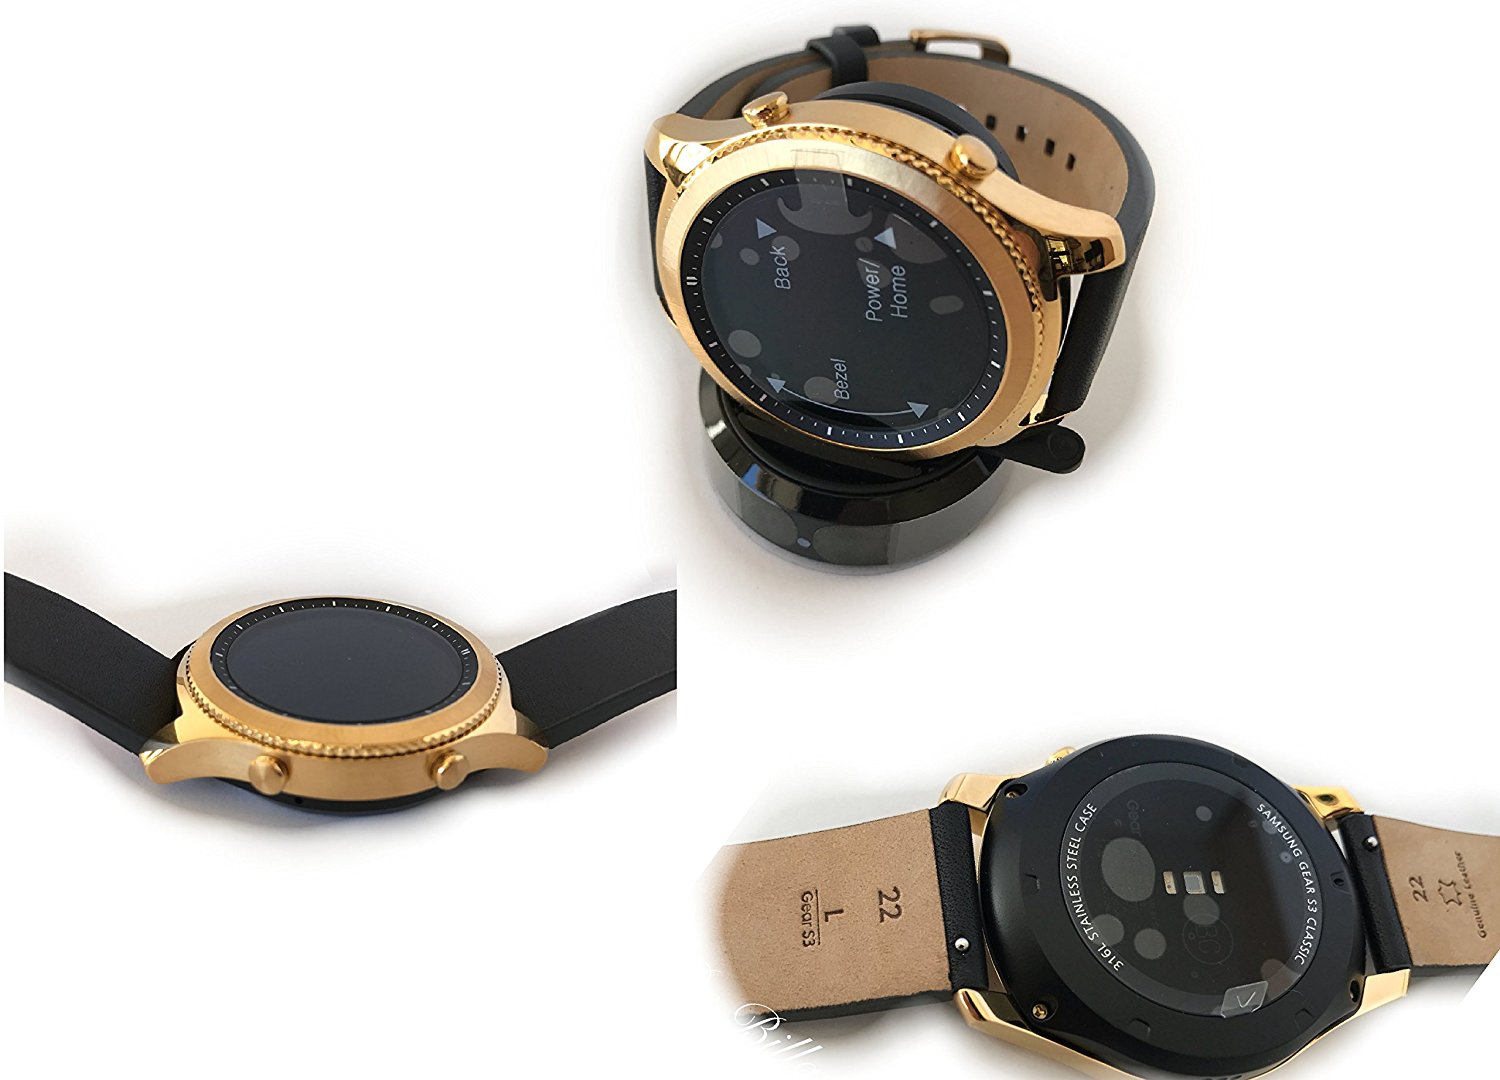 Samsung Gear S3 gold plated 3